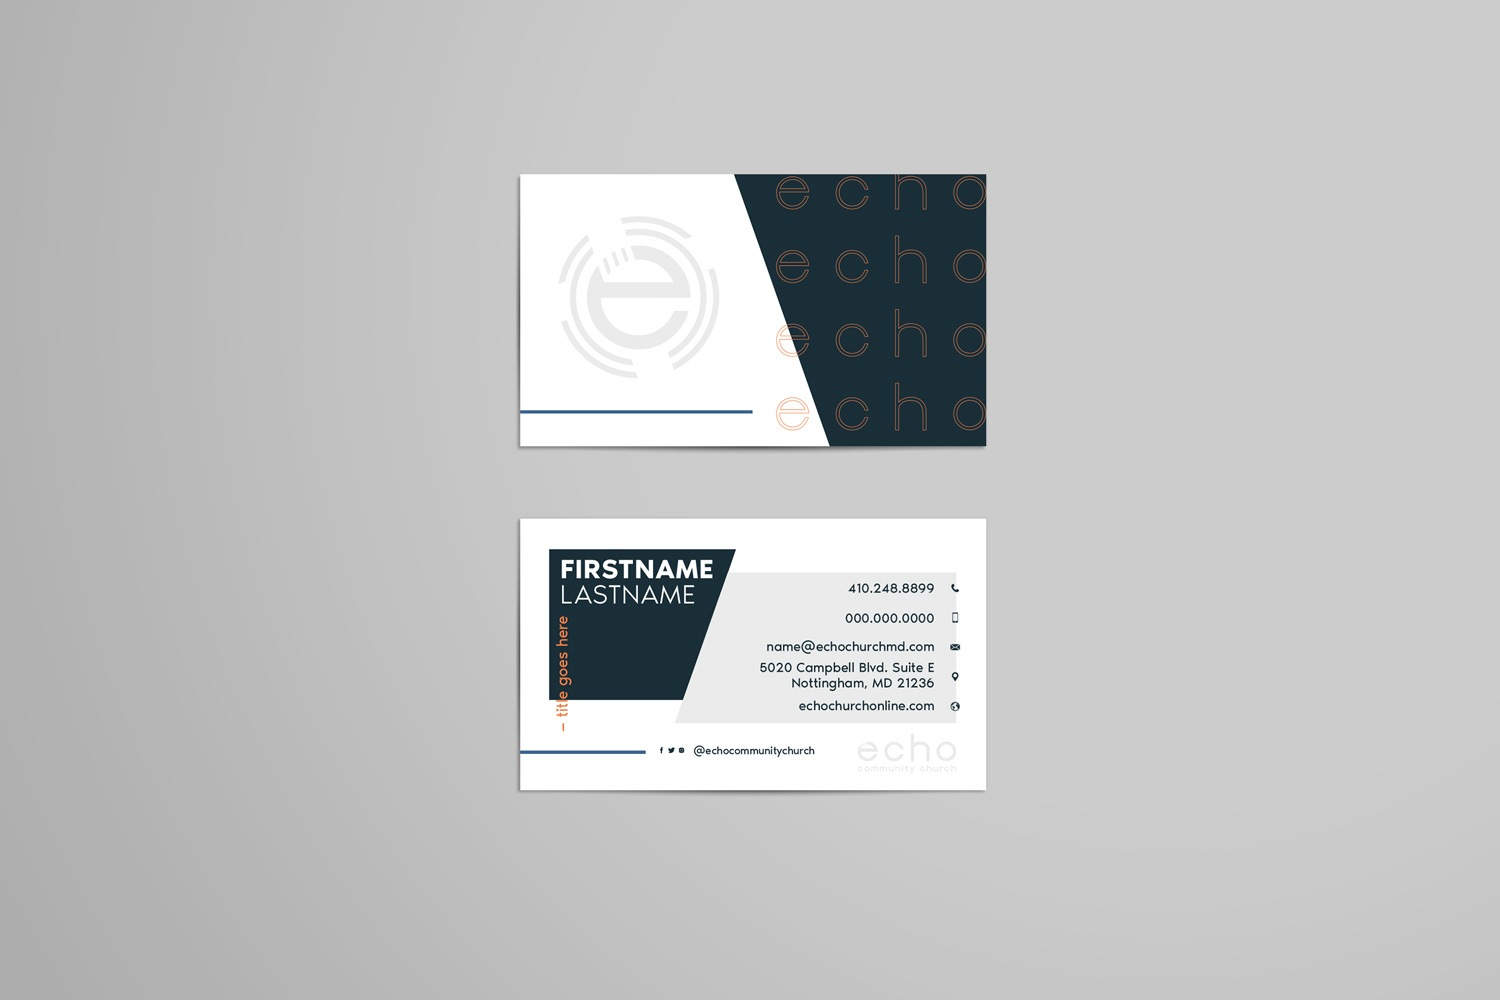 Examples of Business cards for church brand design and branding strategy by Abstract Union